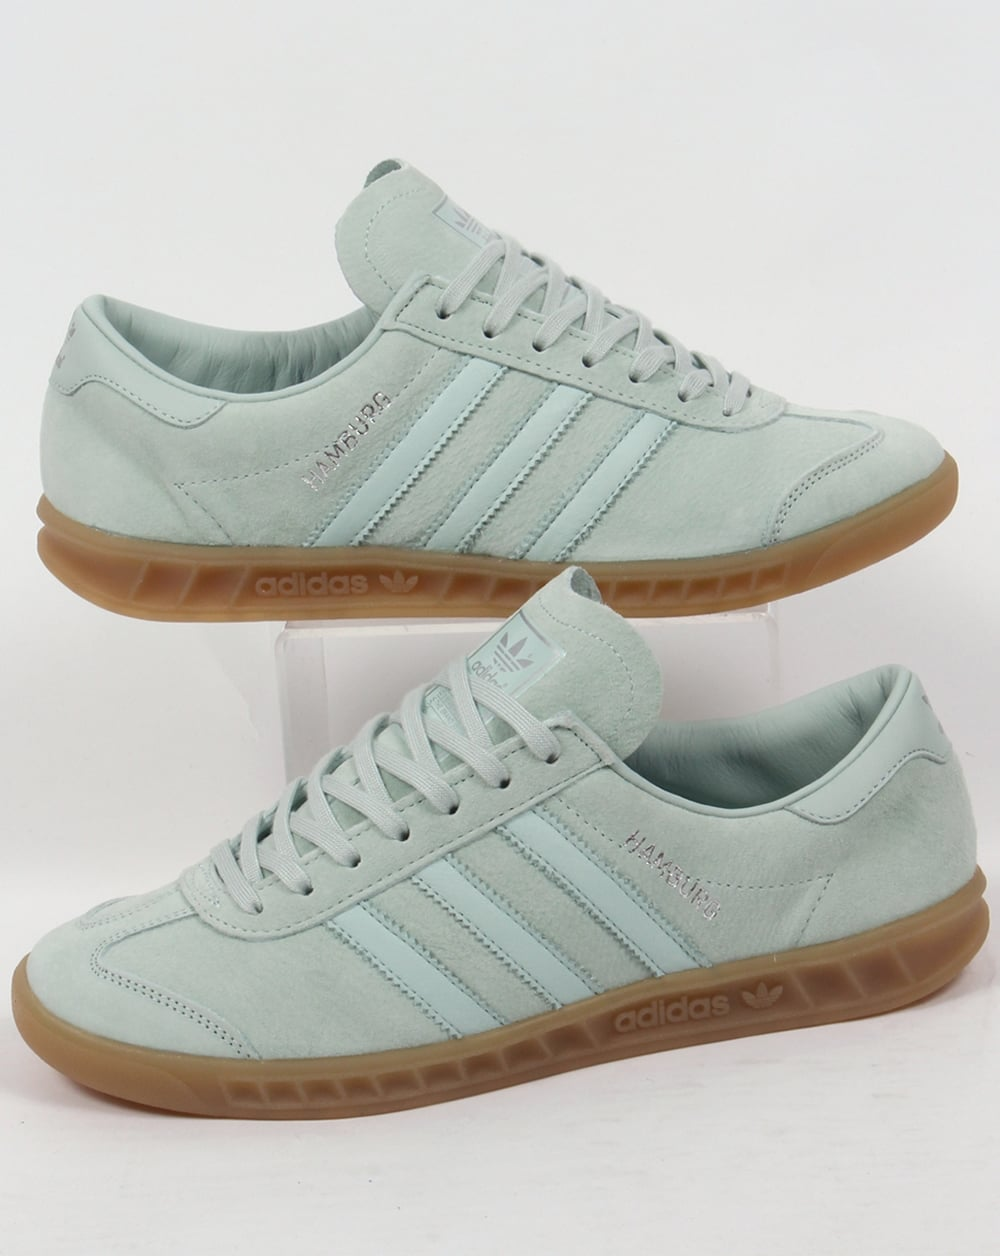 3b71c0326ced adidas Trainers Adidas Hamburg Trainers Green Chalk